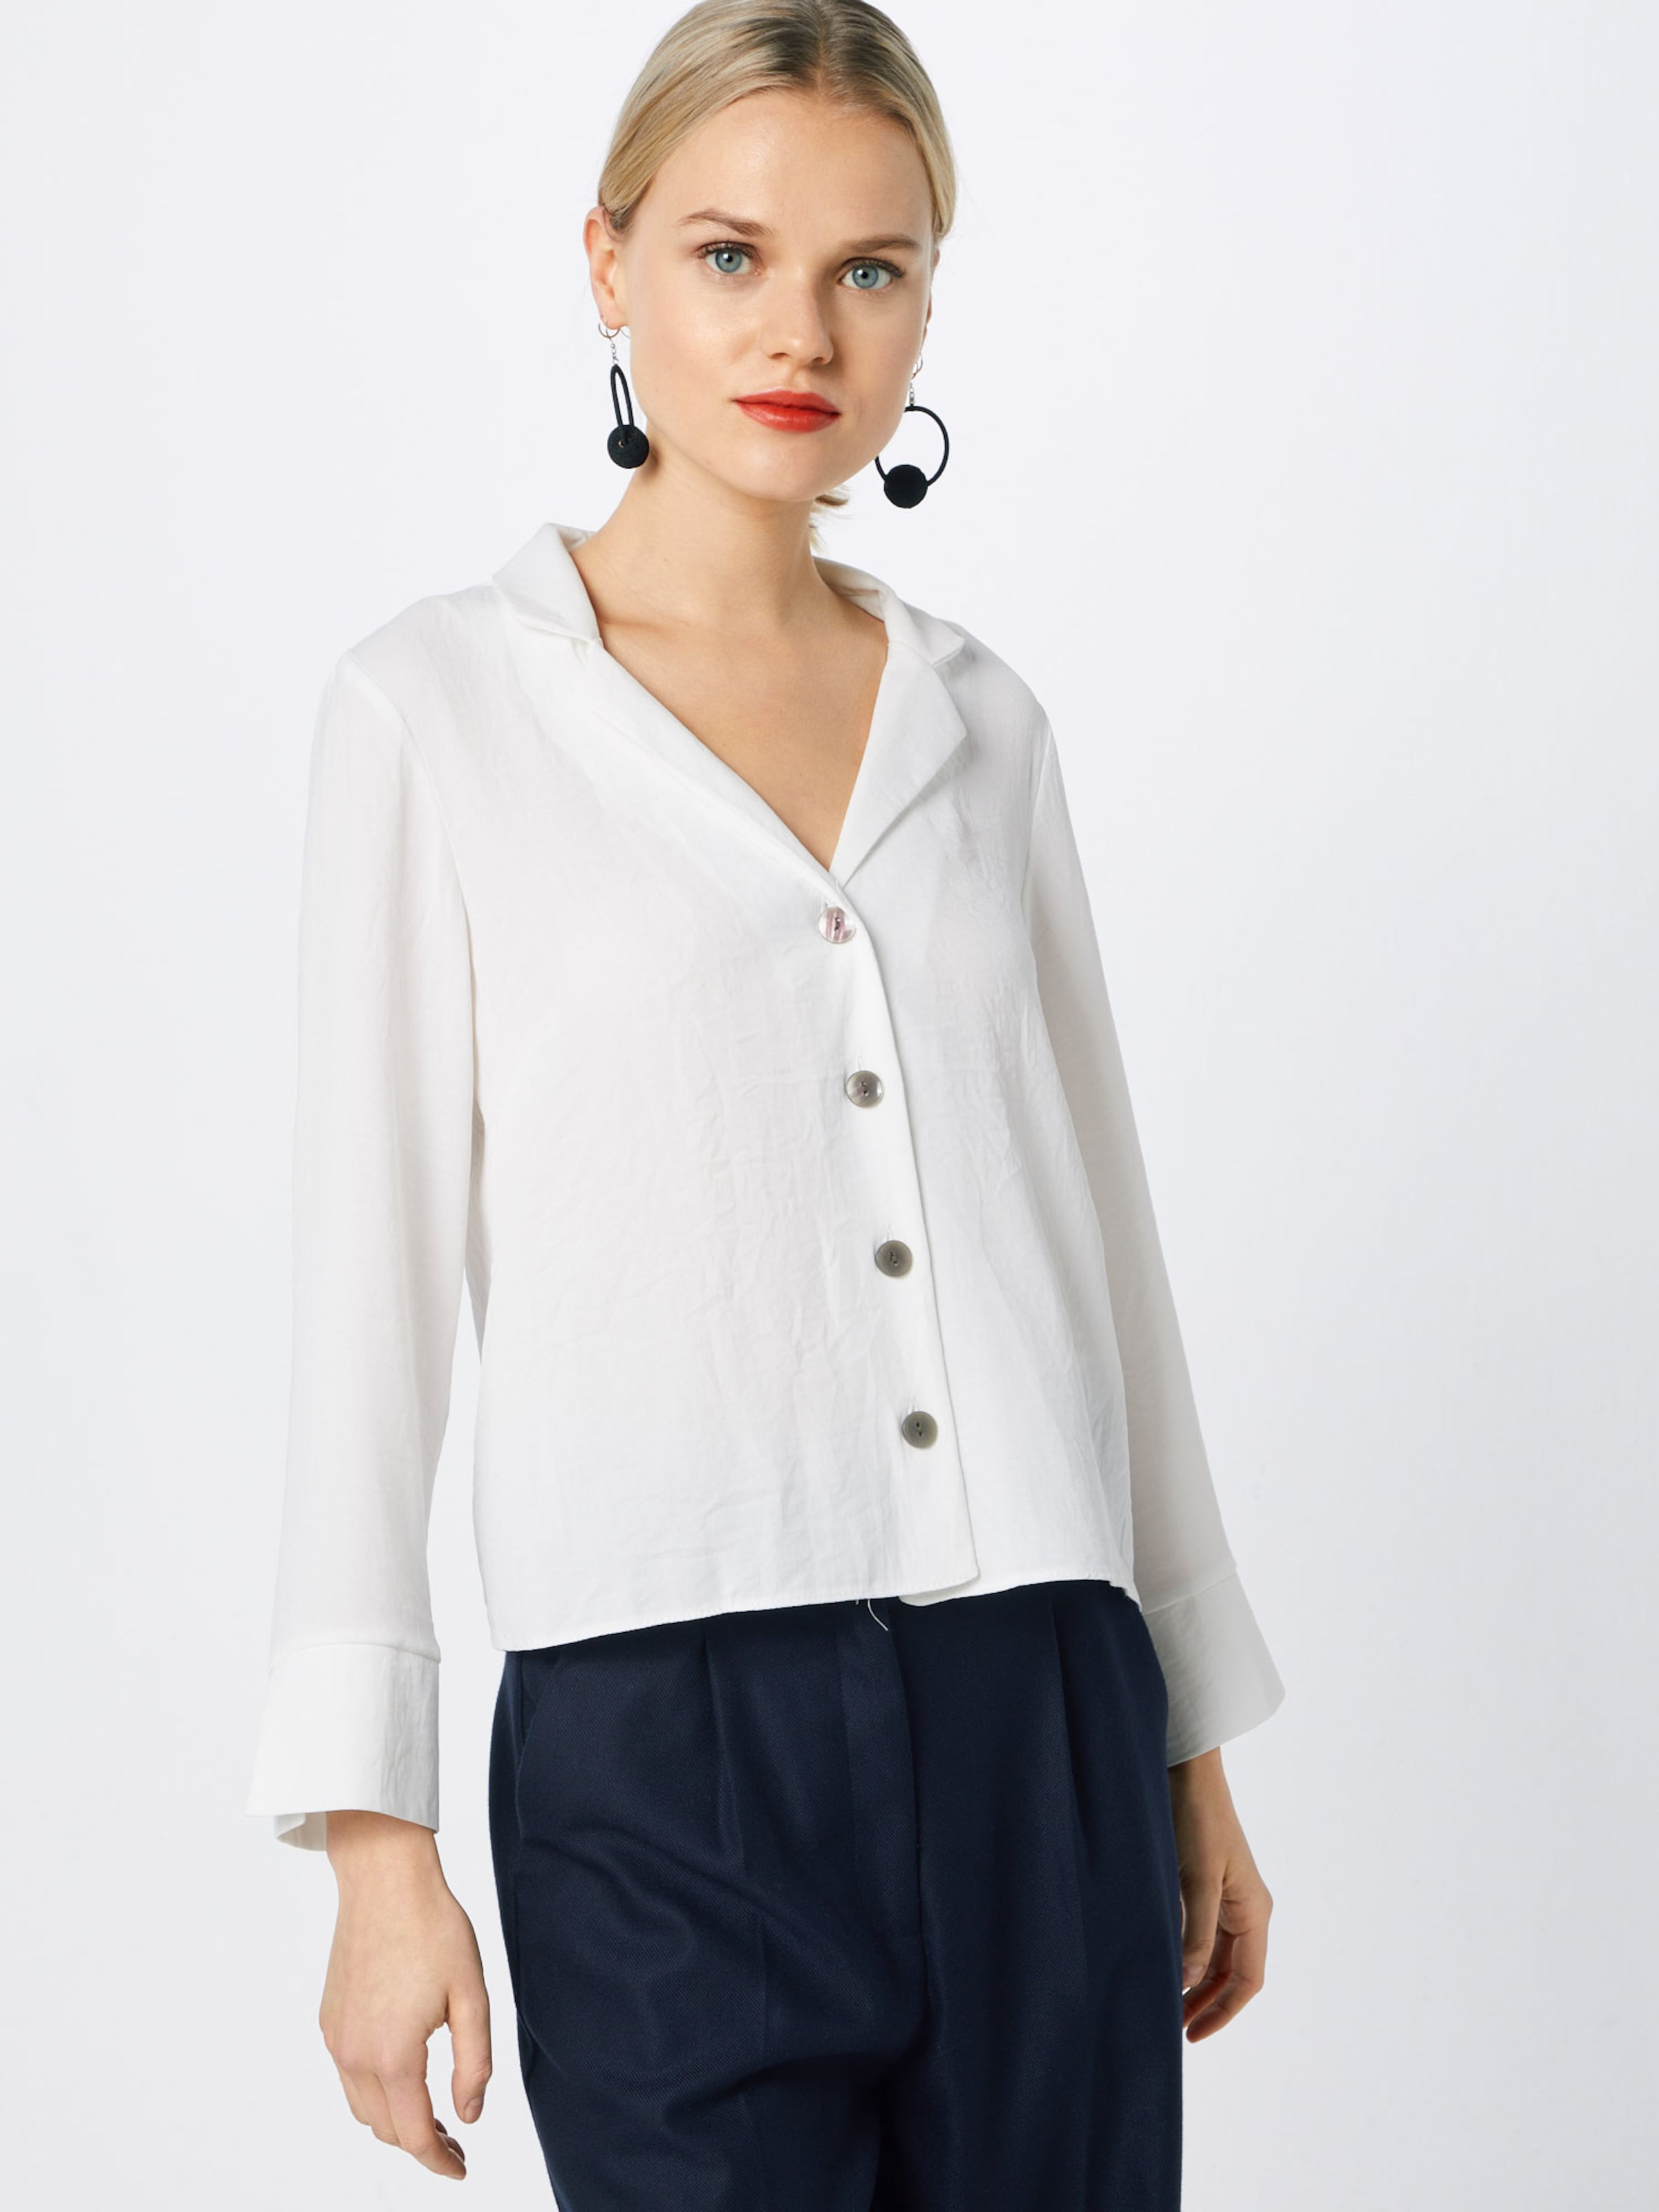 Look In 04 Weiß Shirt' Bluse Ww Peggy New '27 0wOknP